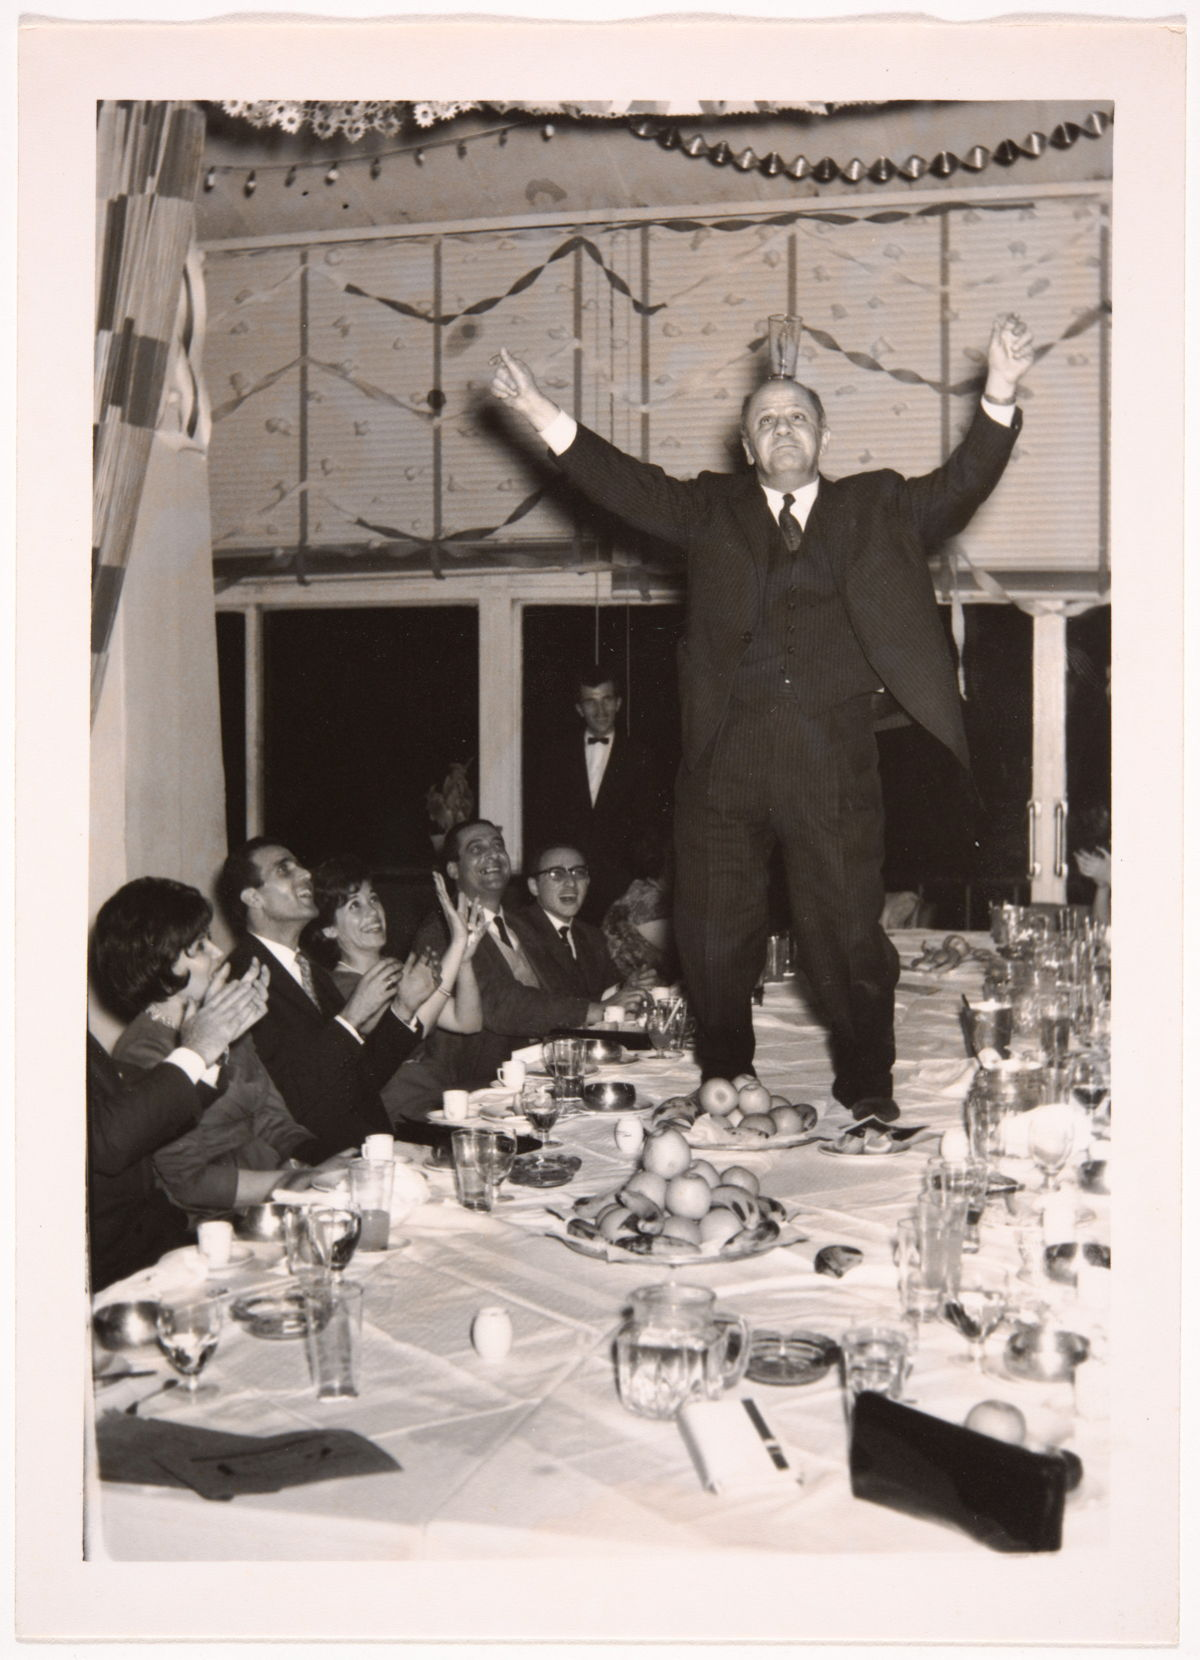 Snapshot at a dinner party. Taken by an unidentified photographer in Syria between 1950 and 1960. Gelatin silver developing-out paper print. 0159ko00005, 0159ko – Haifa Kocache collection, courtesy of the Arab Image Foundation, Beirut.